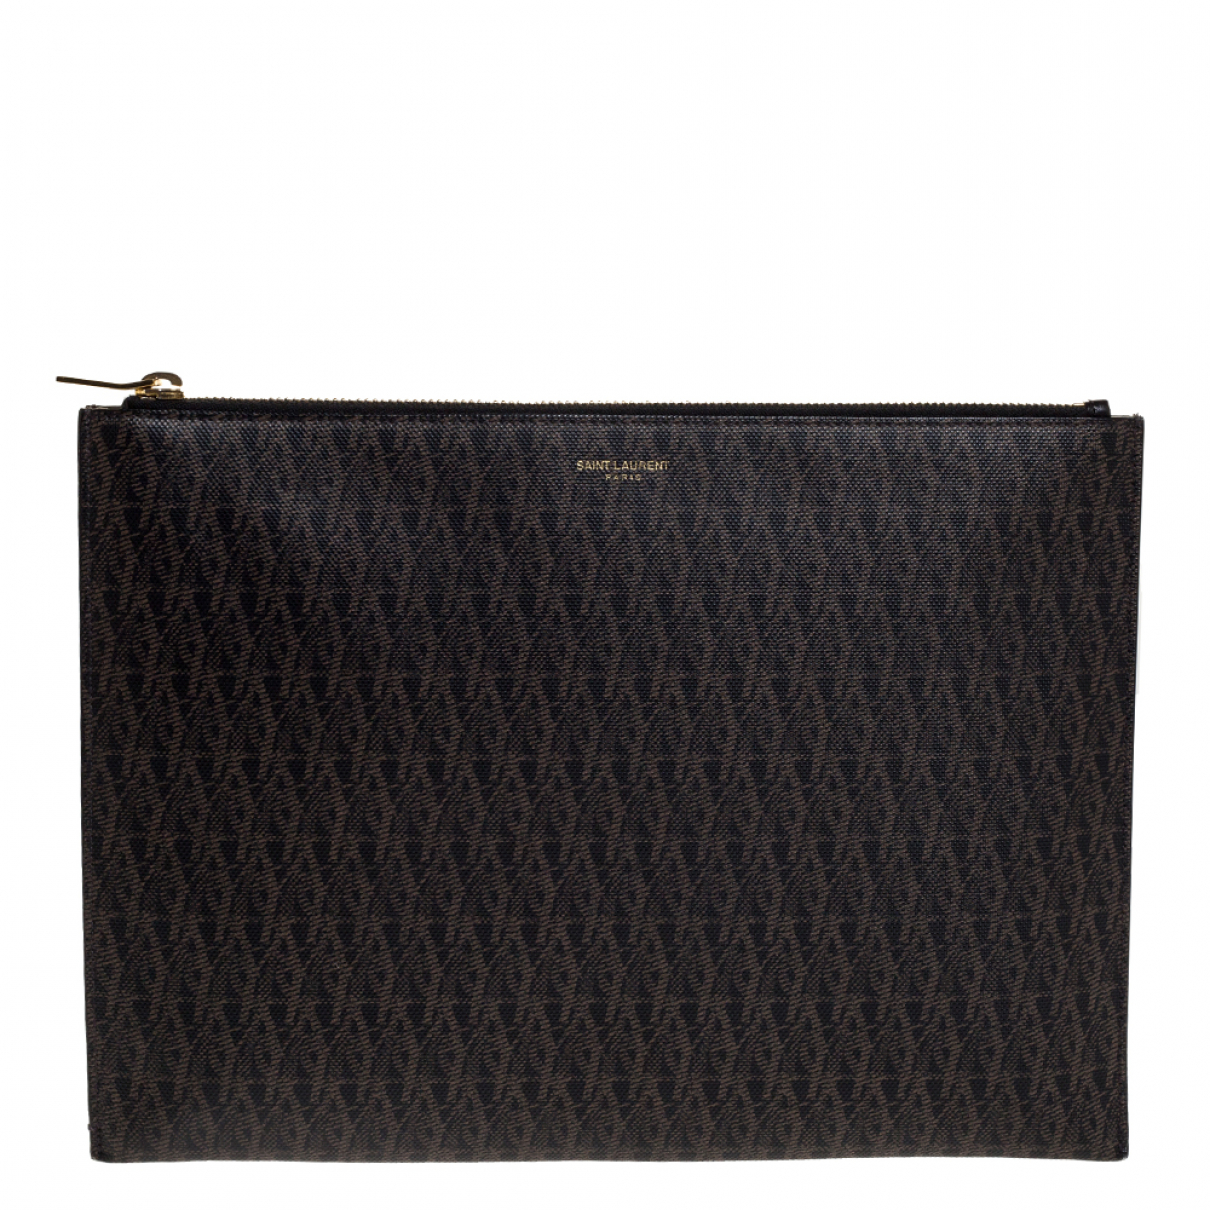 Pochette de Lona Saint Laurent